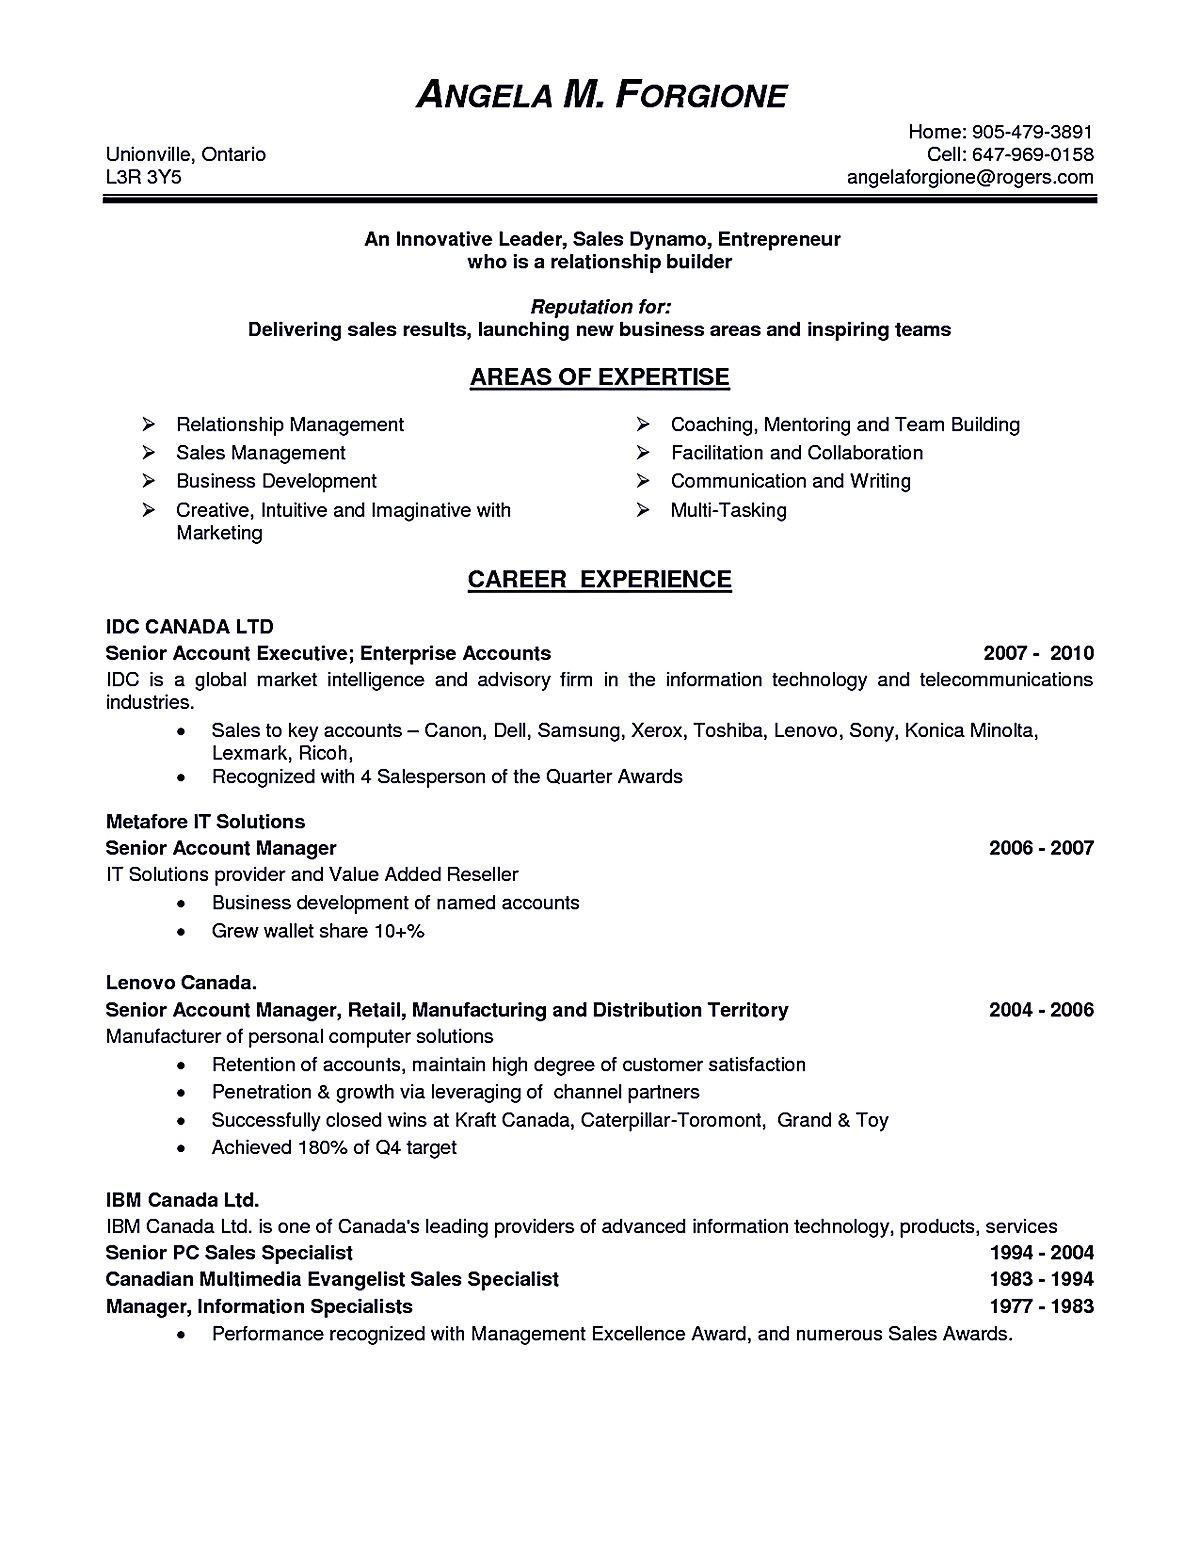 Account Executive Resume Is Like Your Weapon To Get The Job You Want Related To The Account Executive Posit Executive Resume Marketing Resume Account Executive